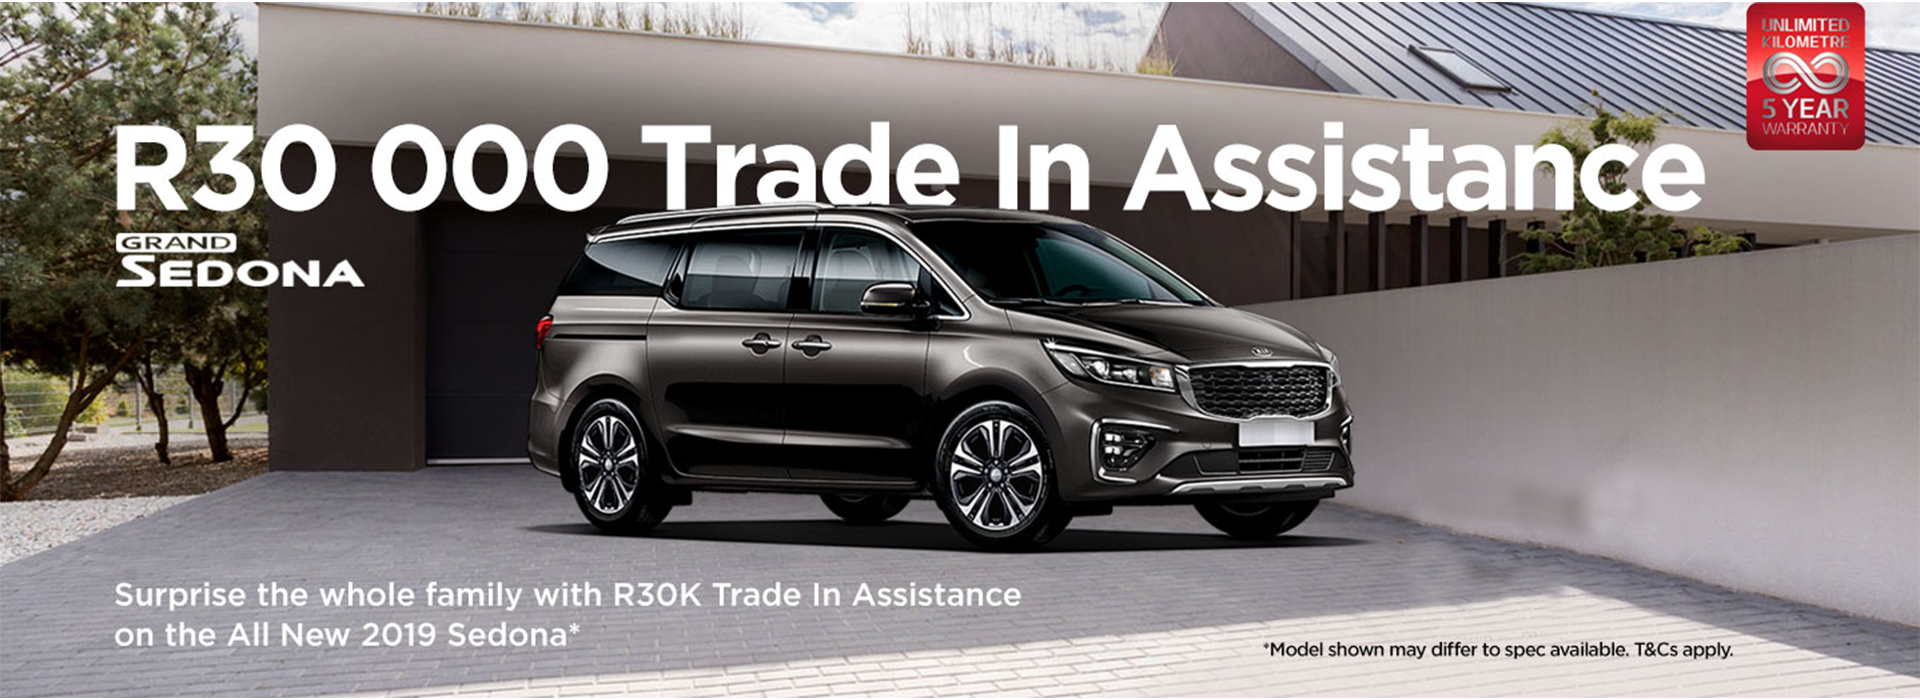 Grand Sedona - R30 000 Trade In Assistance